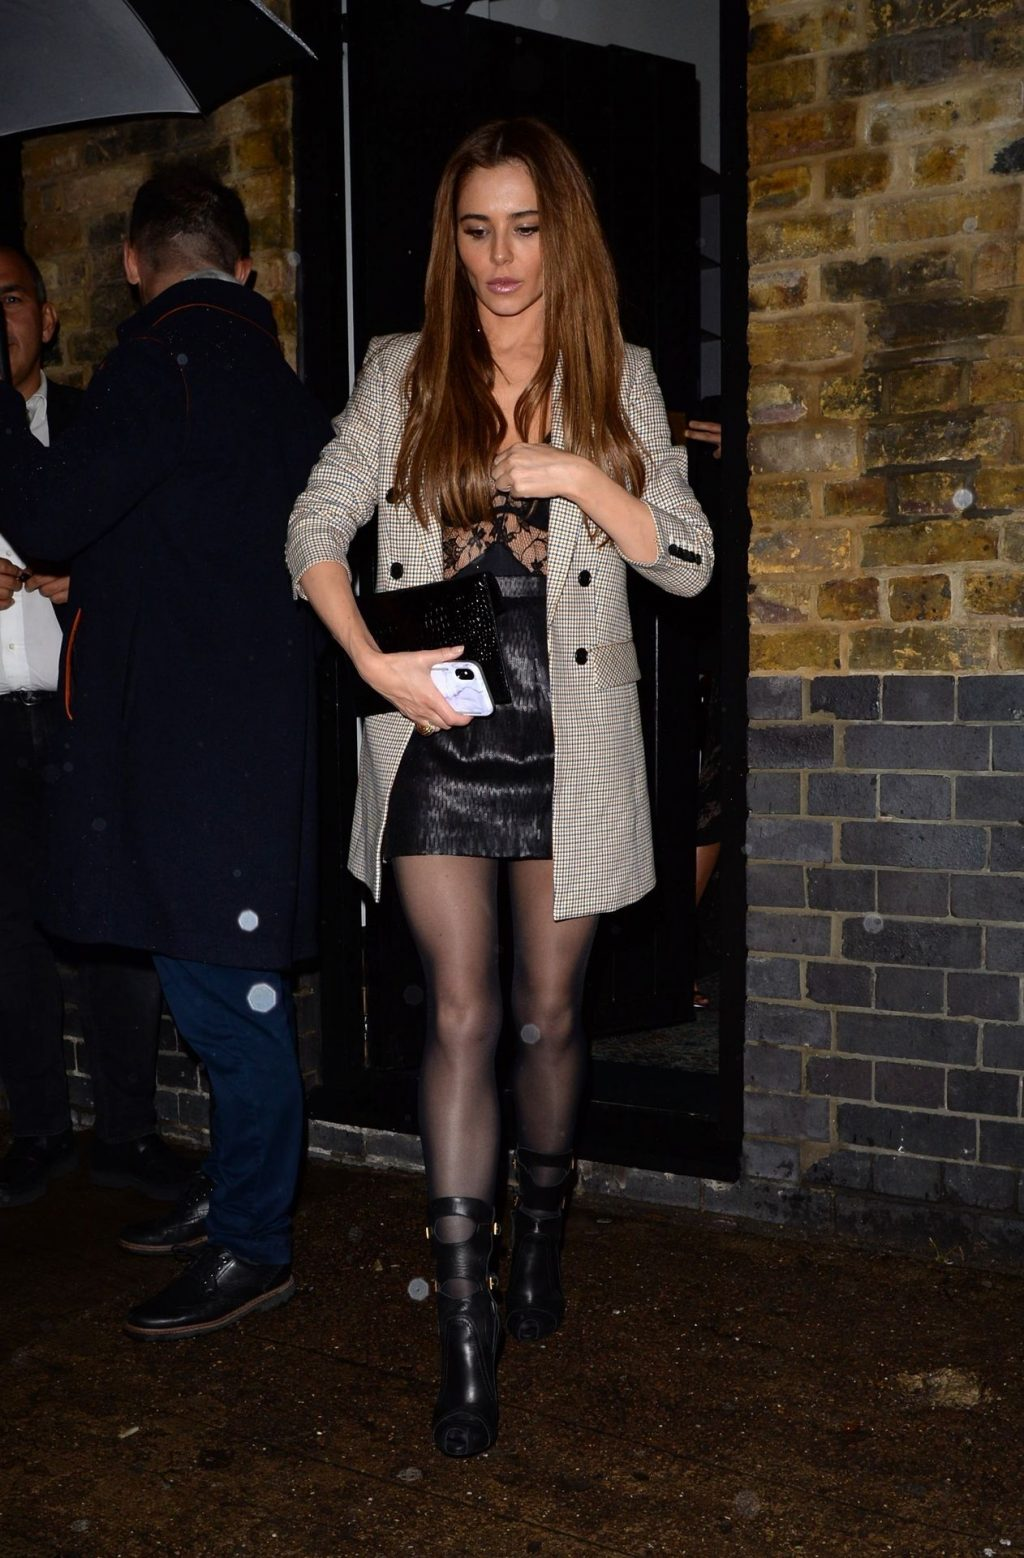 Cheryl Cole - Spotted at The Chiltern Firehouse in London